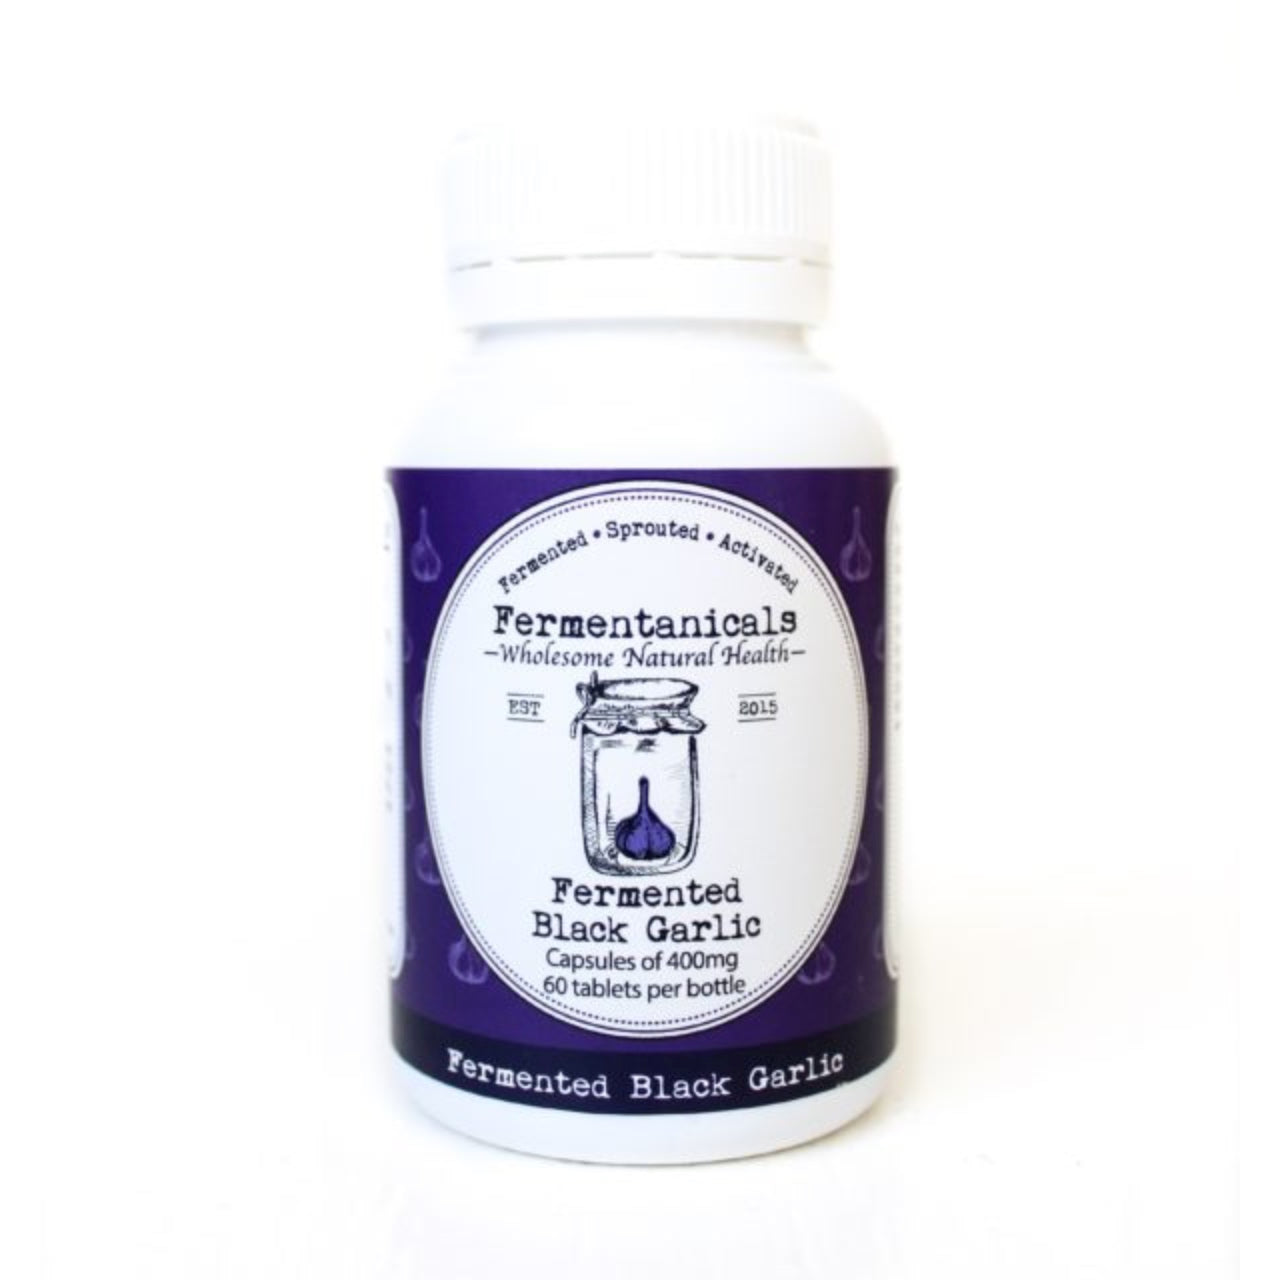 Fermentanicals Fermented Black Garlic Capsules